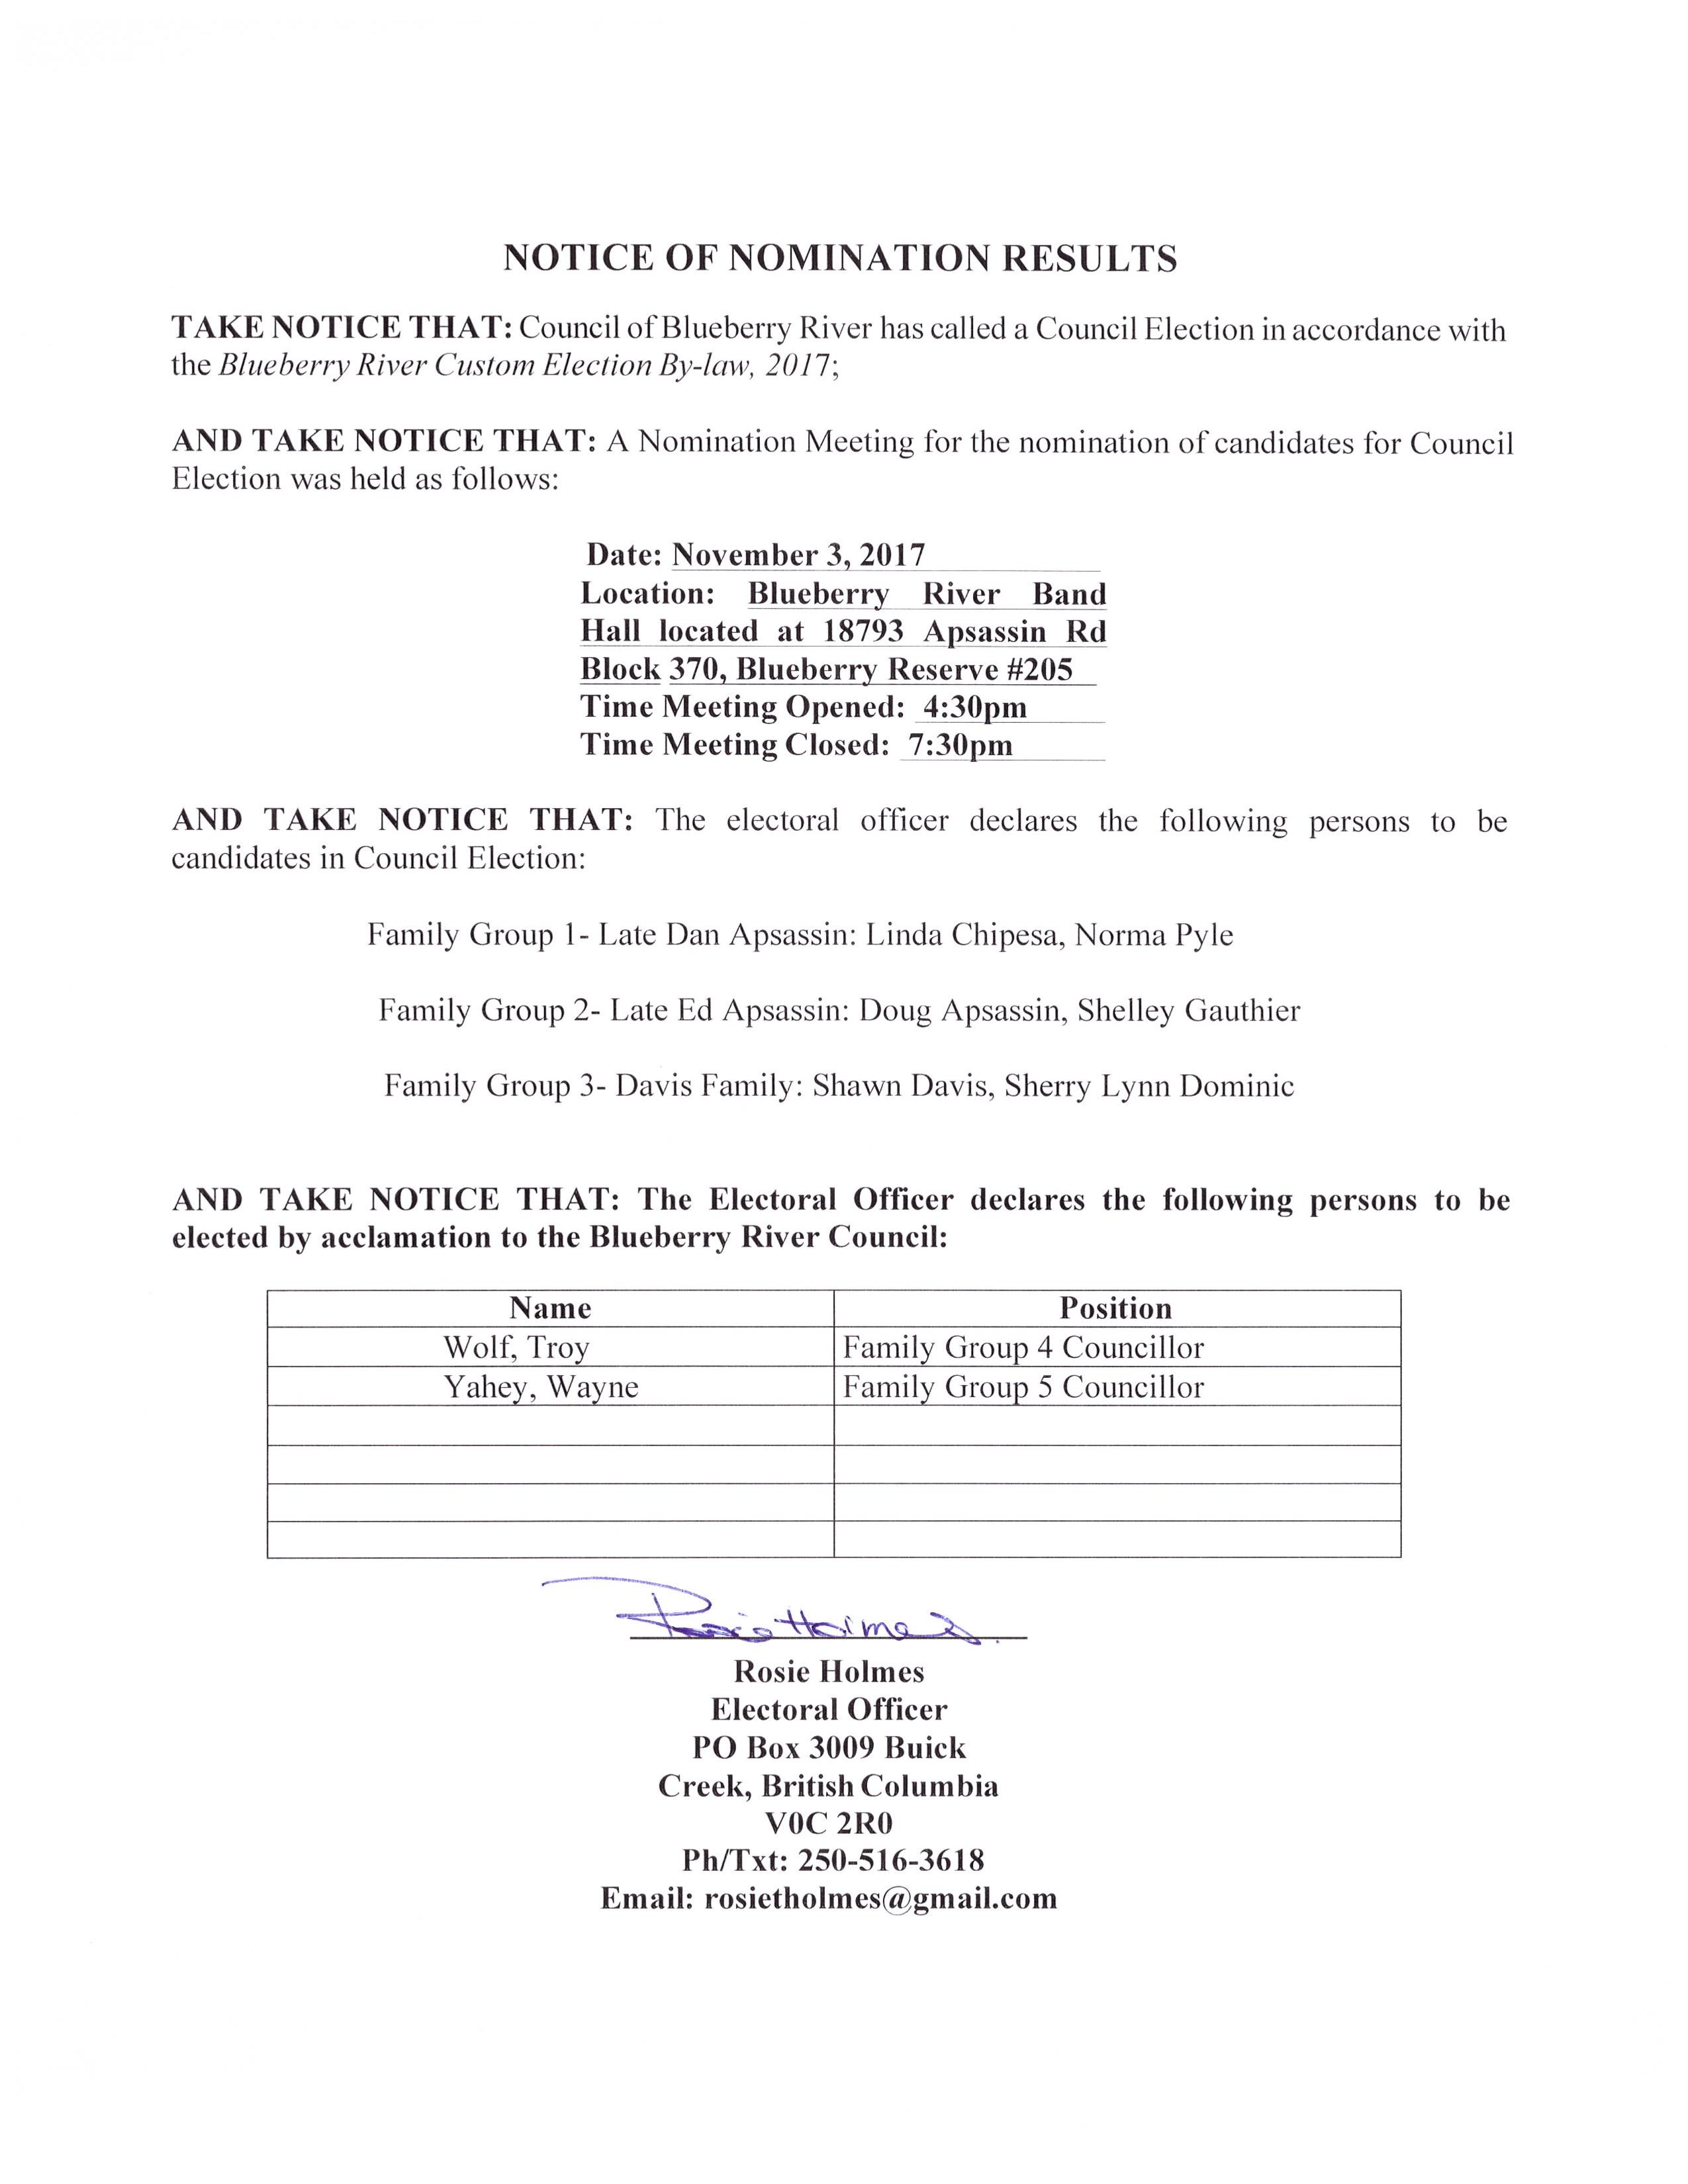 BRFN NOTICE OF NOMINATION RESULTS-page-001.jpg